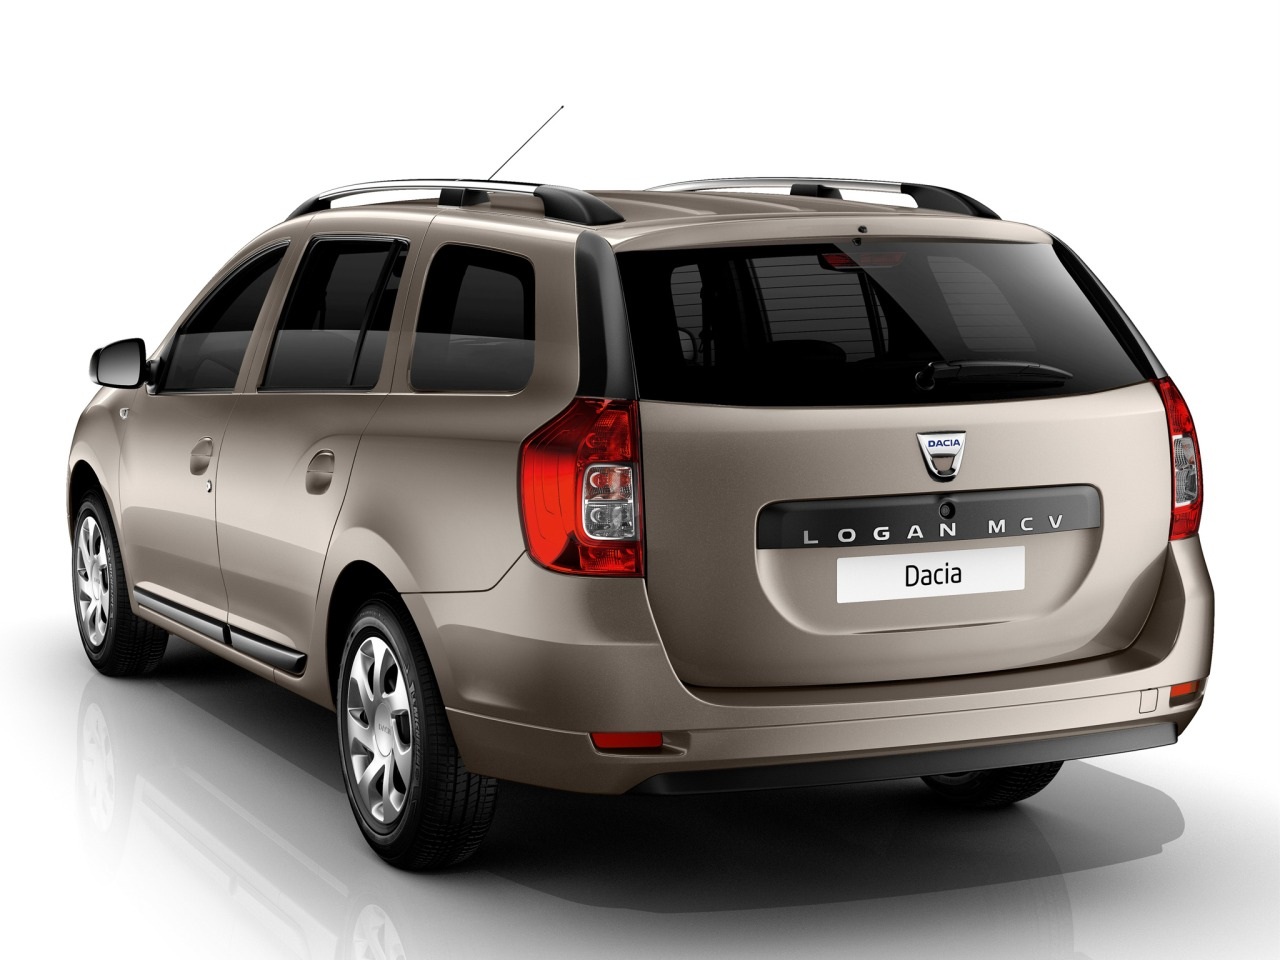 foto dacia logan mcv 2013 dacia logan mcv 07. Black Bedroom Furniture Sets. Home Design Ideas